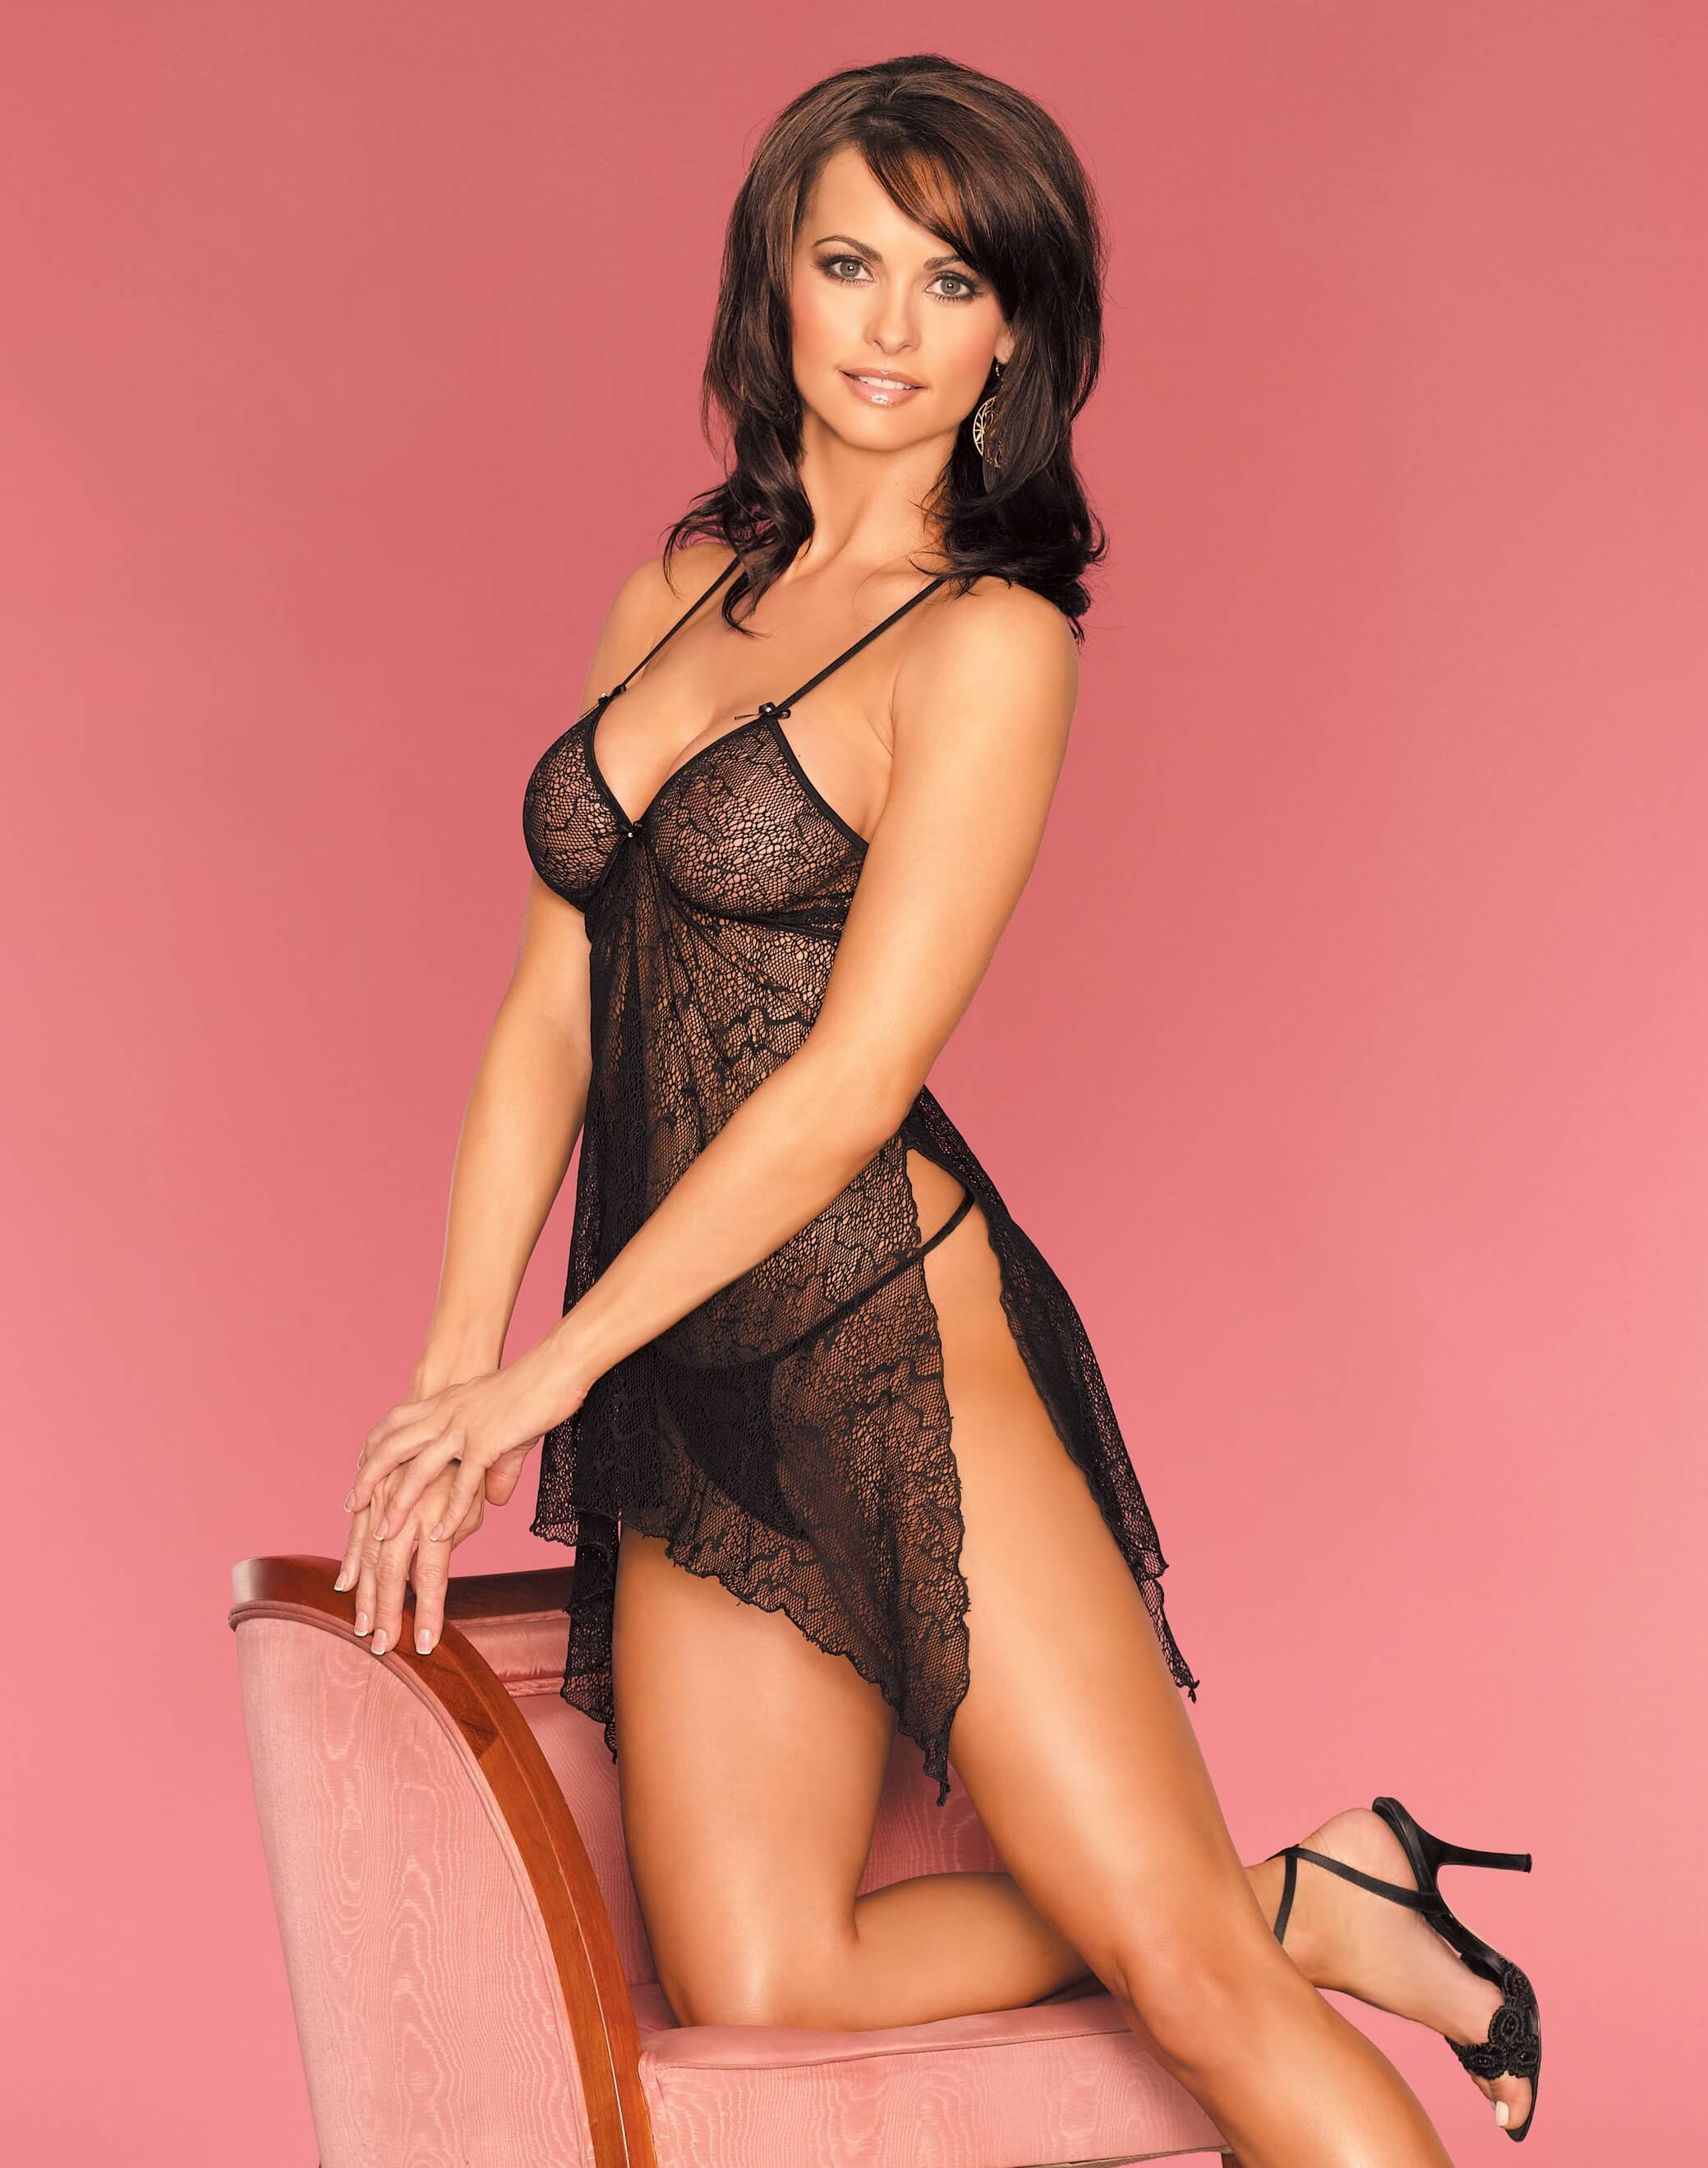 49 Hot Pictures Of Karen McDougal Which Will Make You Fall